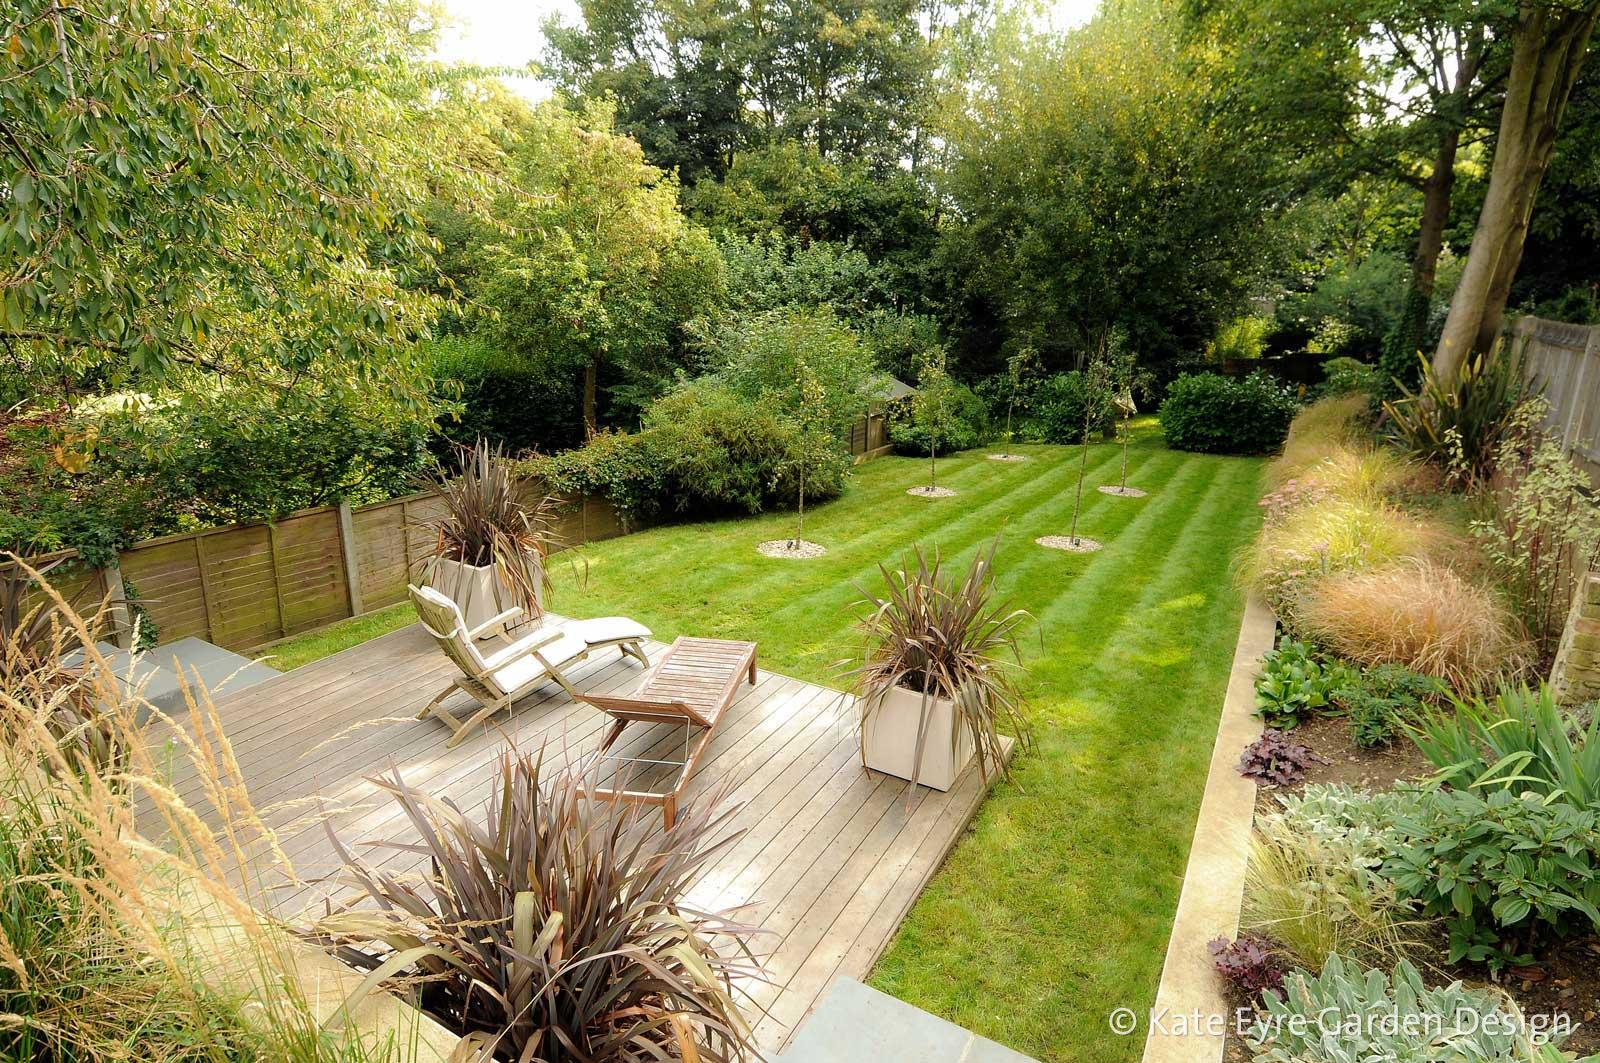 Garden design in crystal palace south east london - Garden ideas london ...